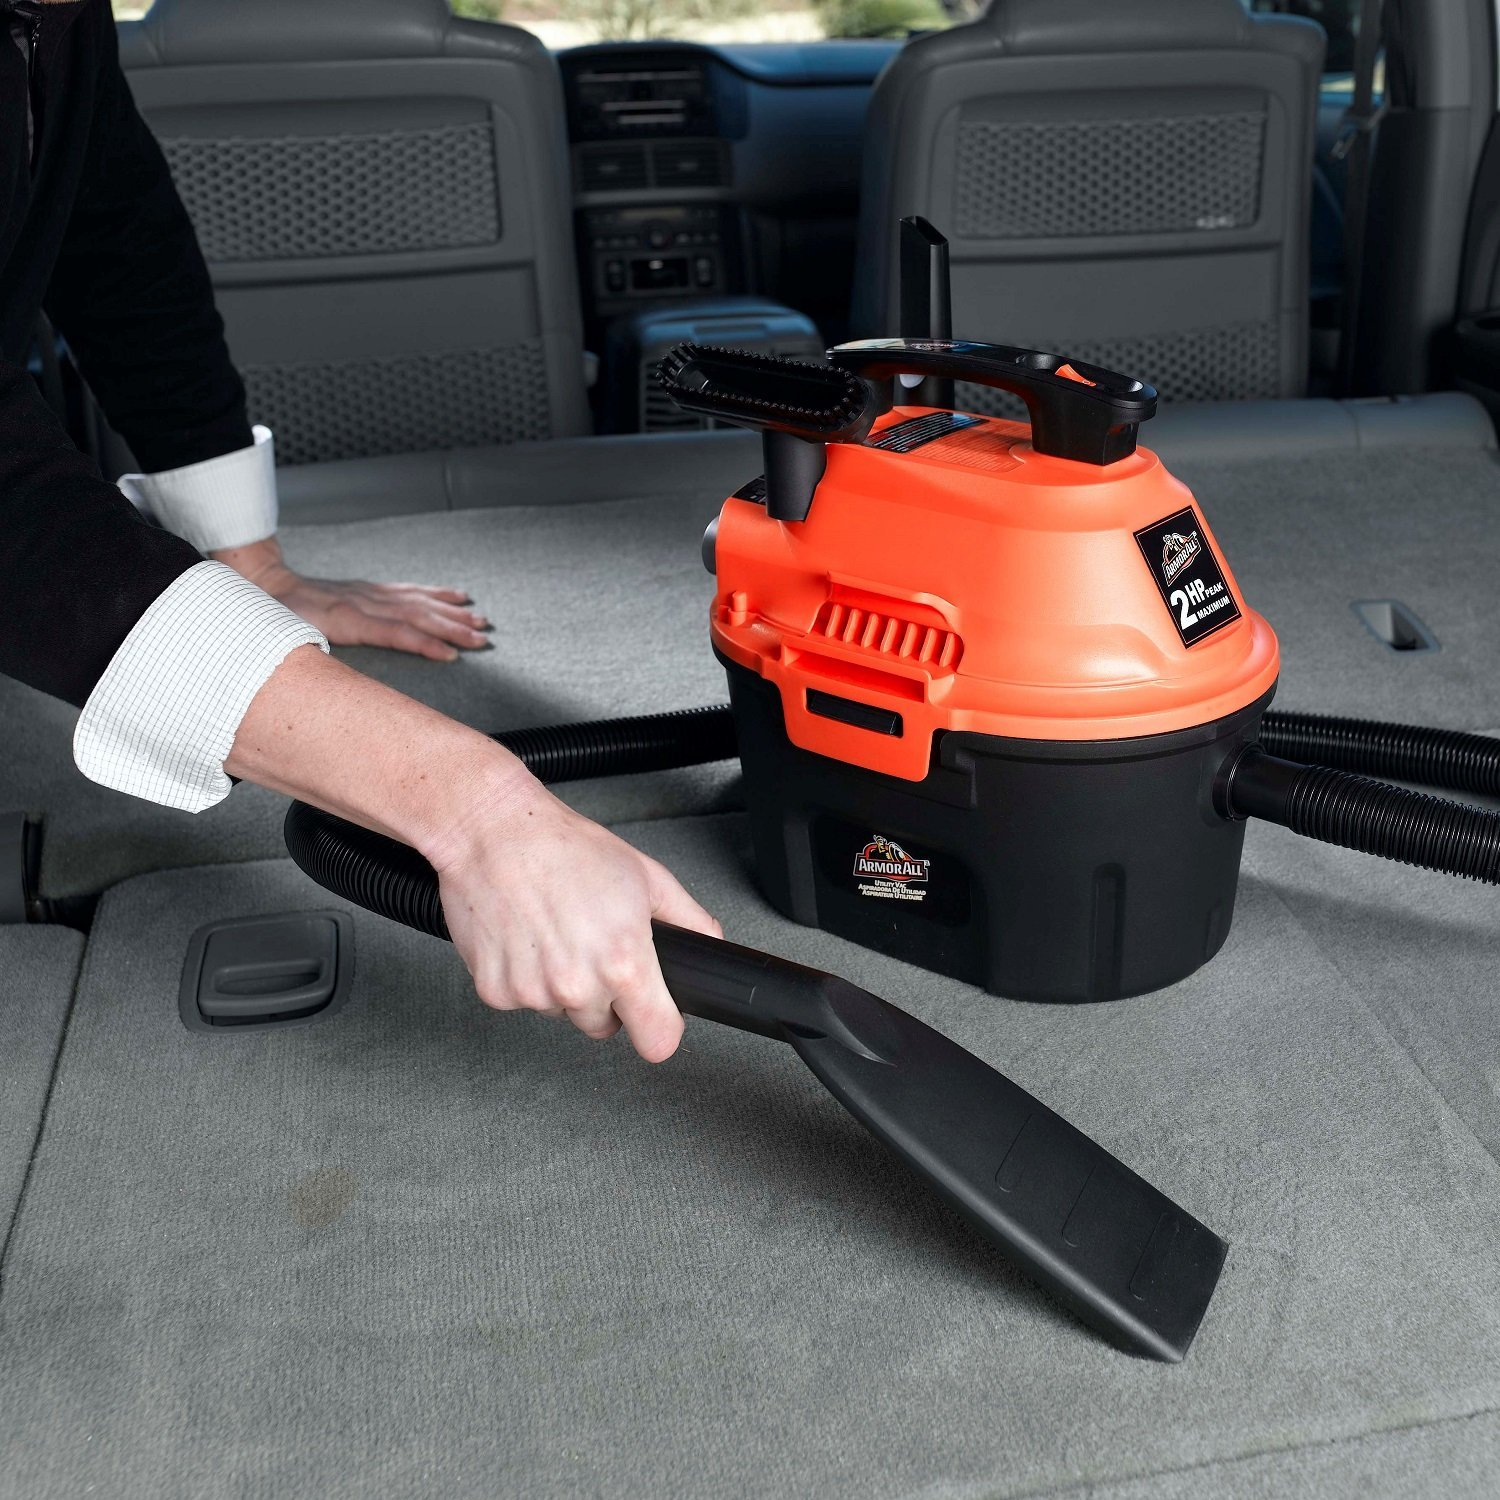 Armor vacuum cleaner used in cleaning the car